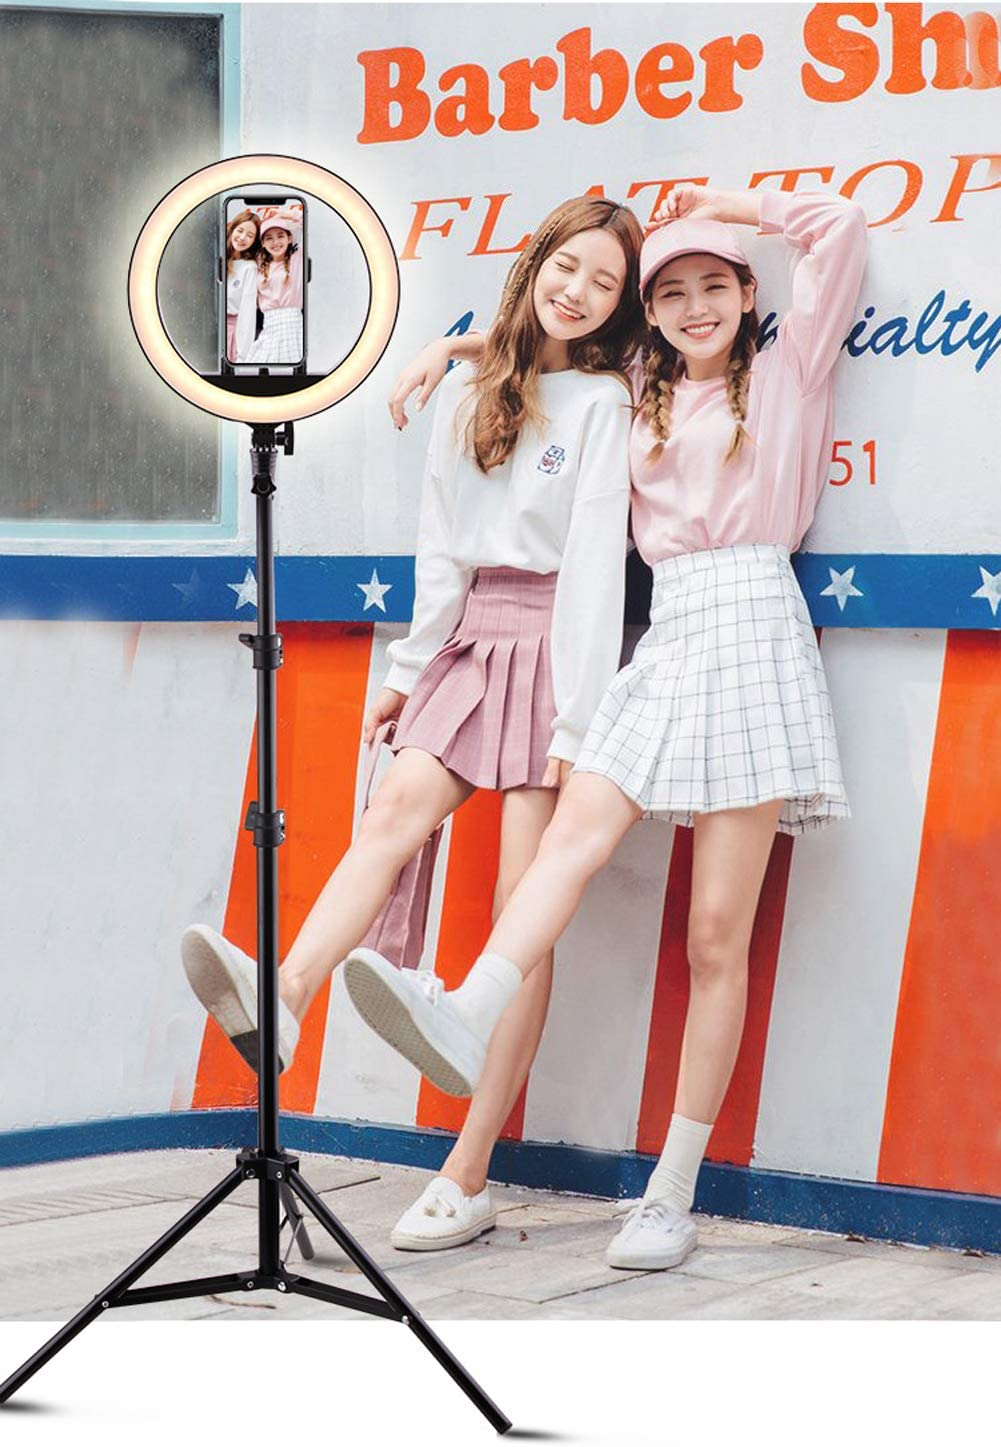 Ldab Ring Light 10 Inch with Phone Holder and Adjustable Stand Selfie Ring Light3 Light Modes for Makeup//YouTube Video//Photography 160cm Bracket